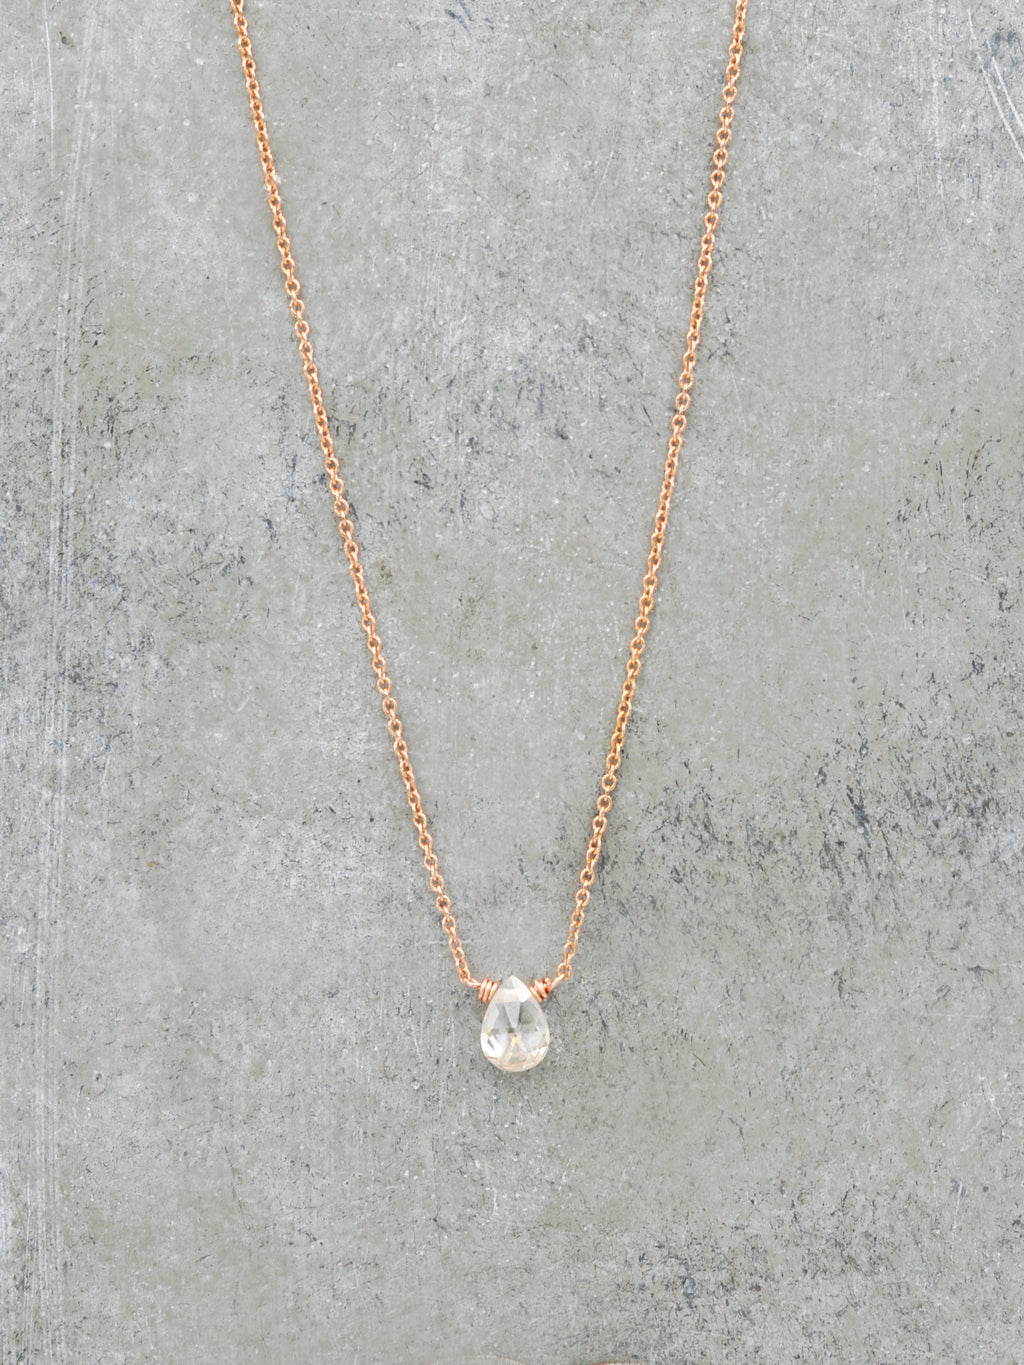 Tiny Gem Teardrop Necklace - Champagne CZ